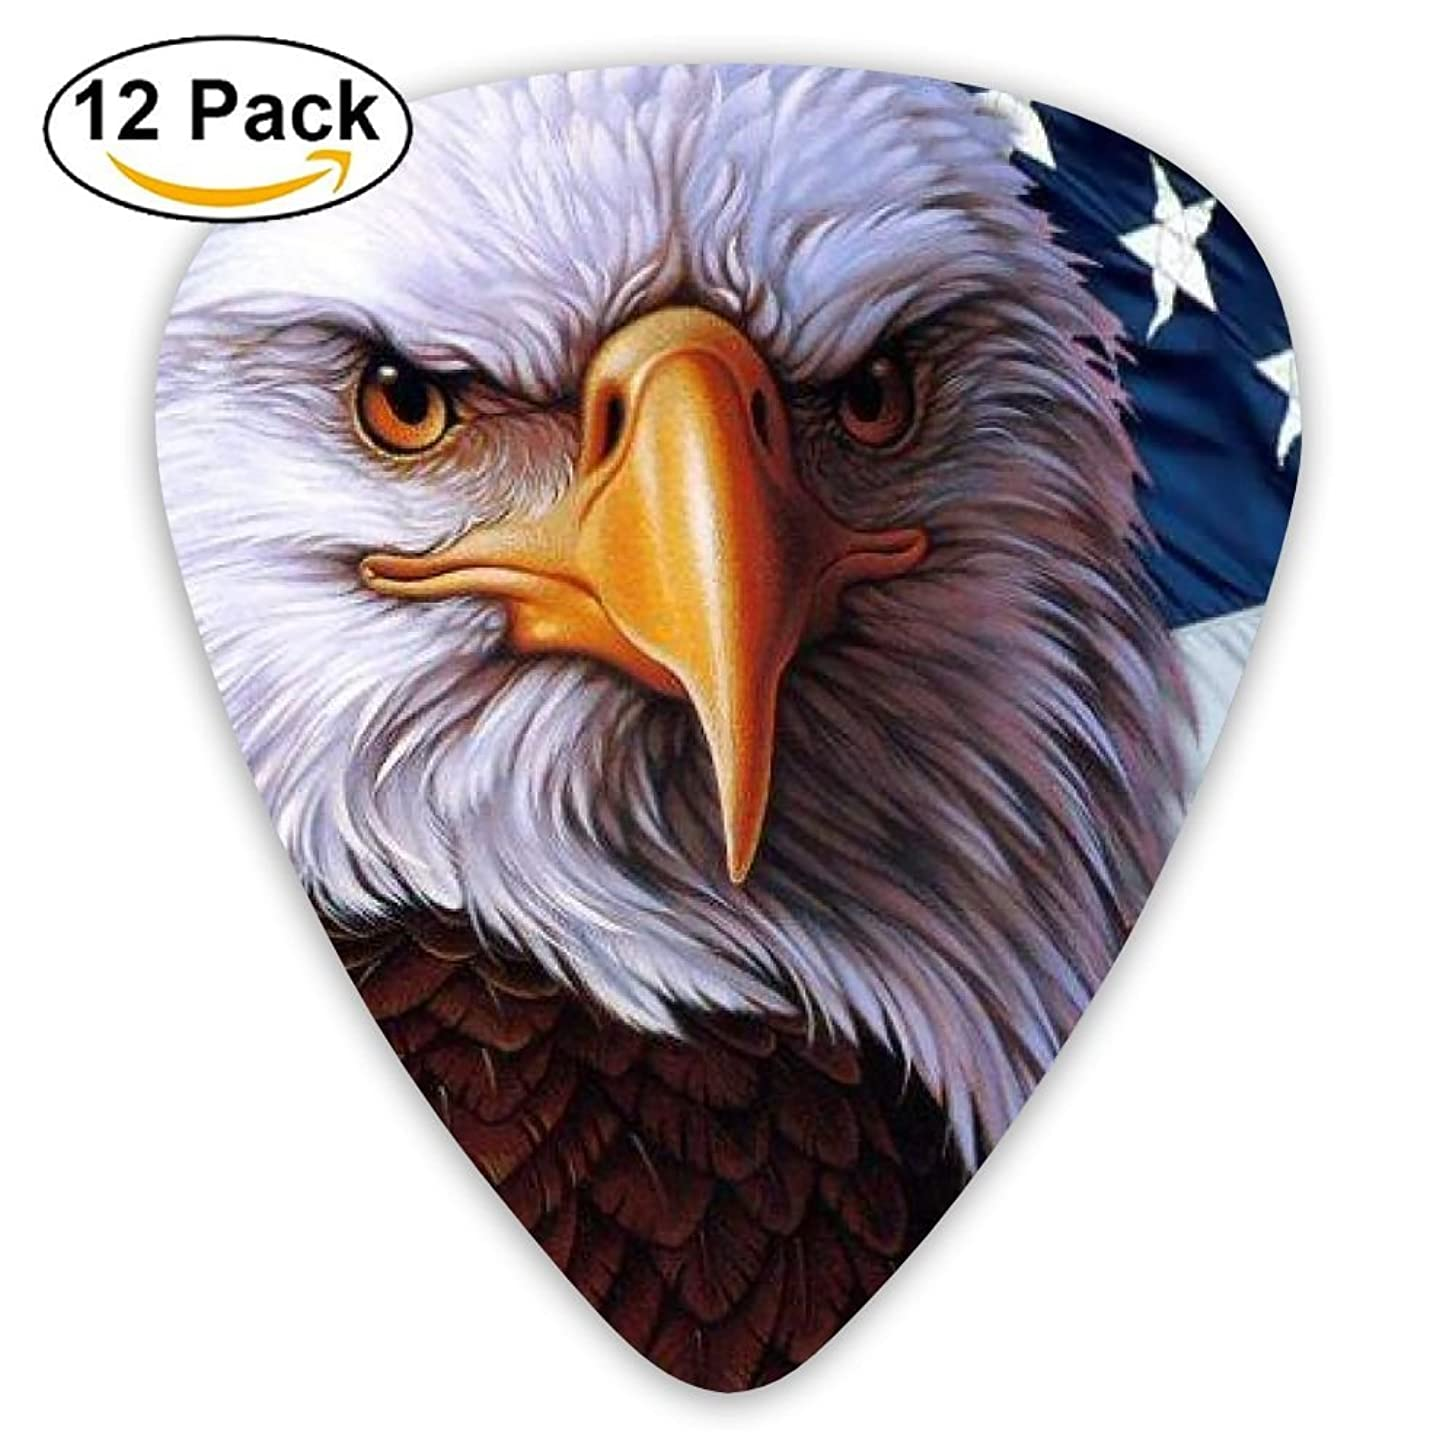 12-pack Fashion Classic Electric Guitar Picks Plectrums American Eagle Flag Stars Instrument Standard Bass Guitarist